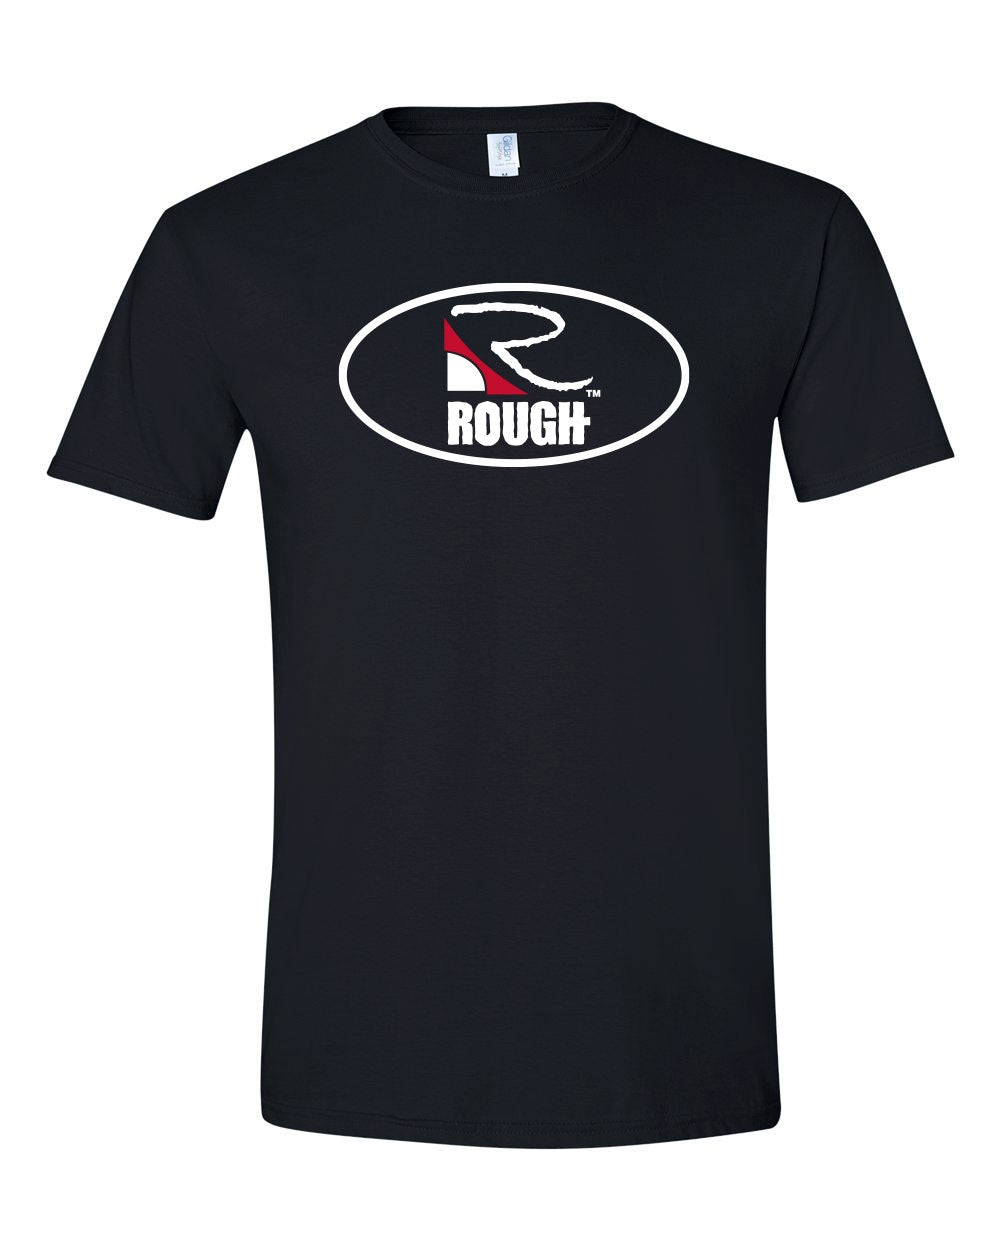 Men's Razor's Edge Cotton T-Shirts